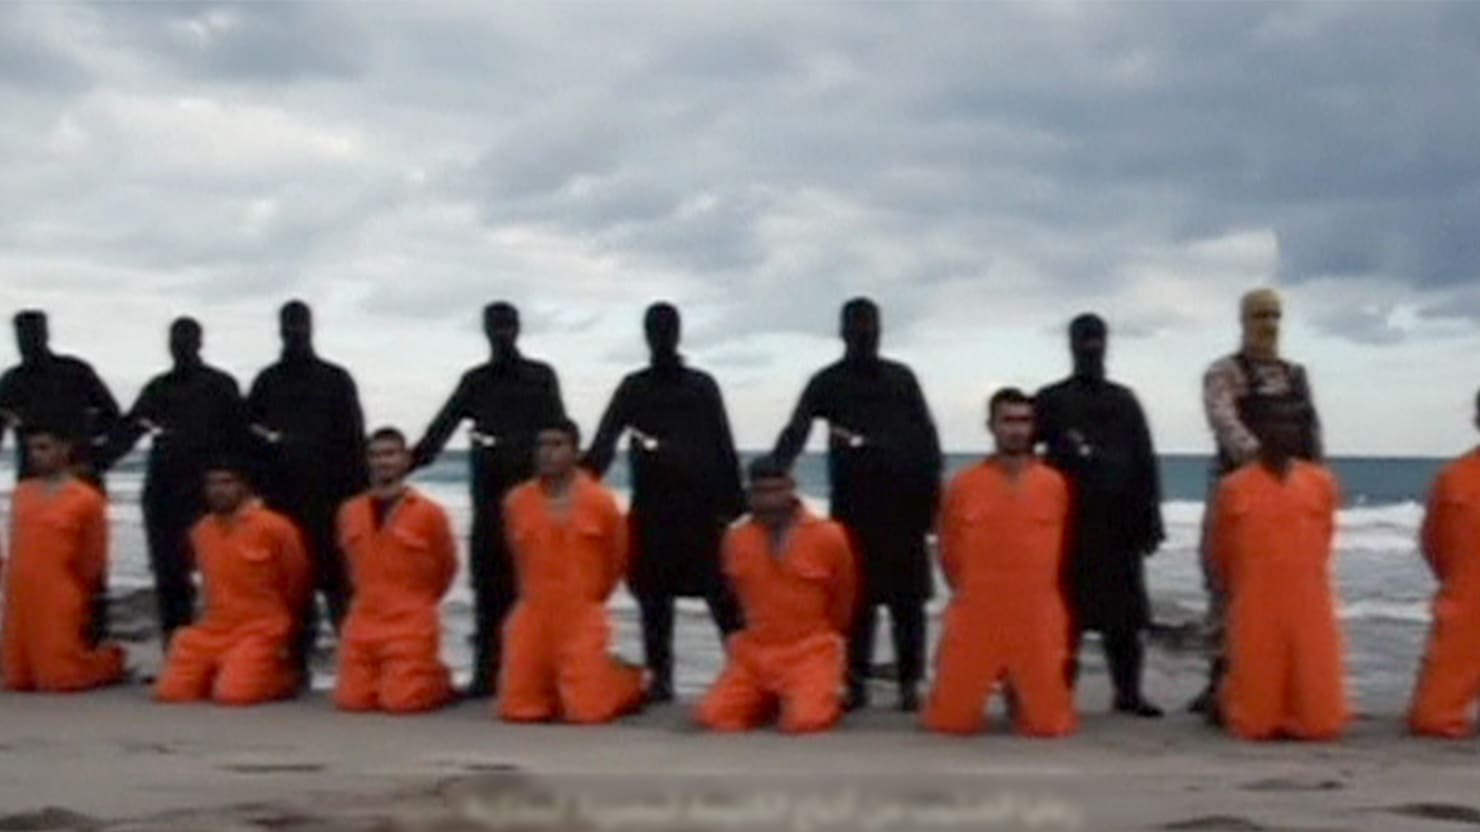 Will It Take The End of the World For Obama To Recognize ISIS As 'Islamic'?